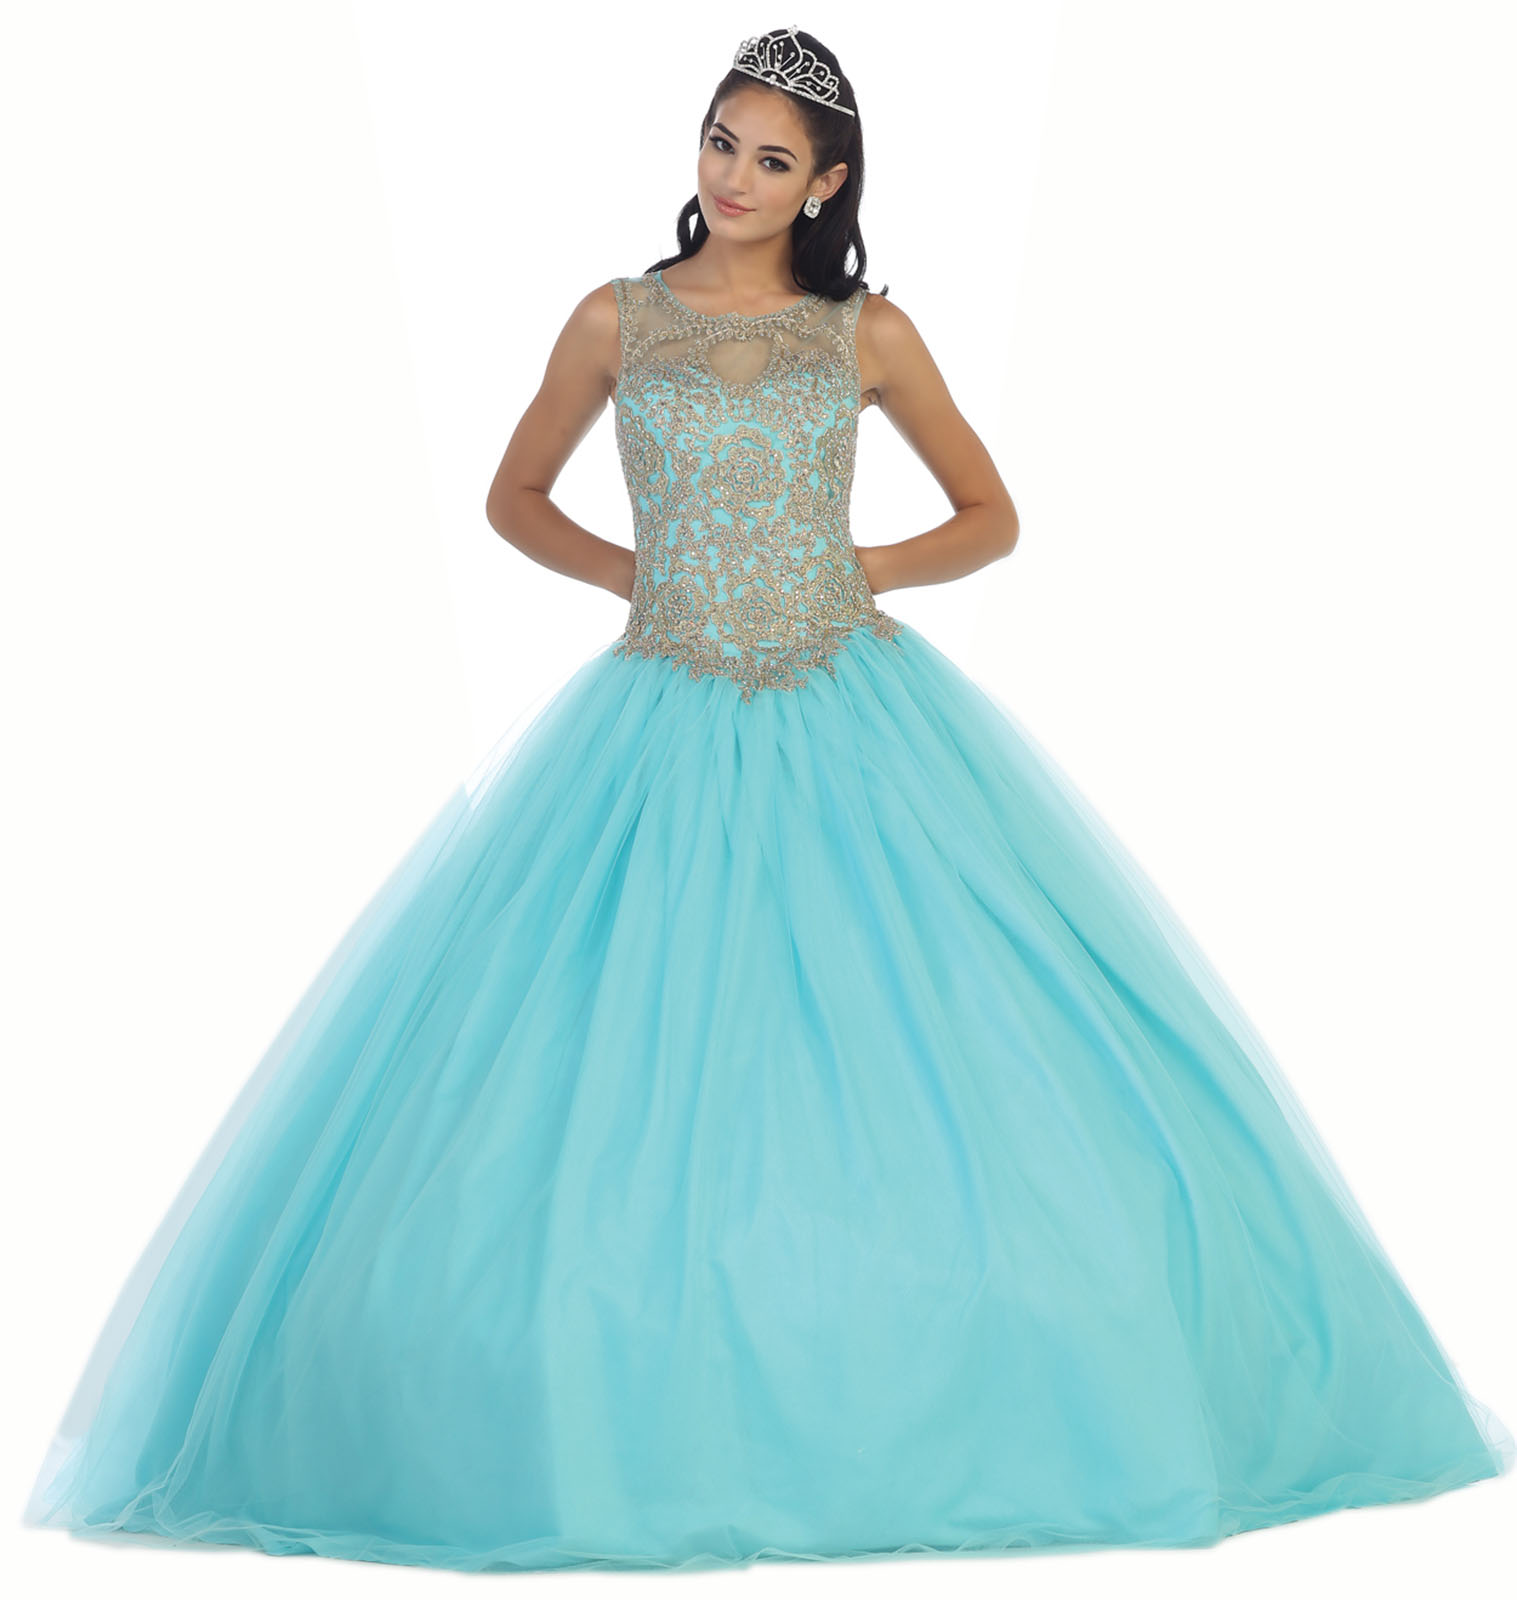 ENCHANTING CINDERELLA FORMAL BALL GOWN